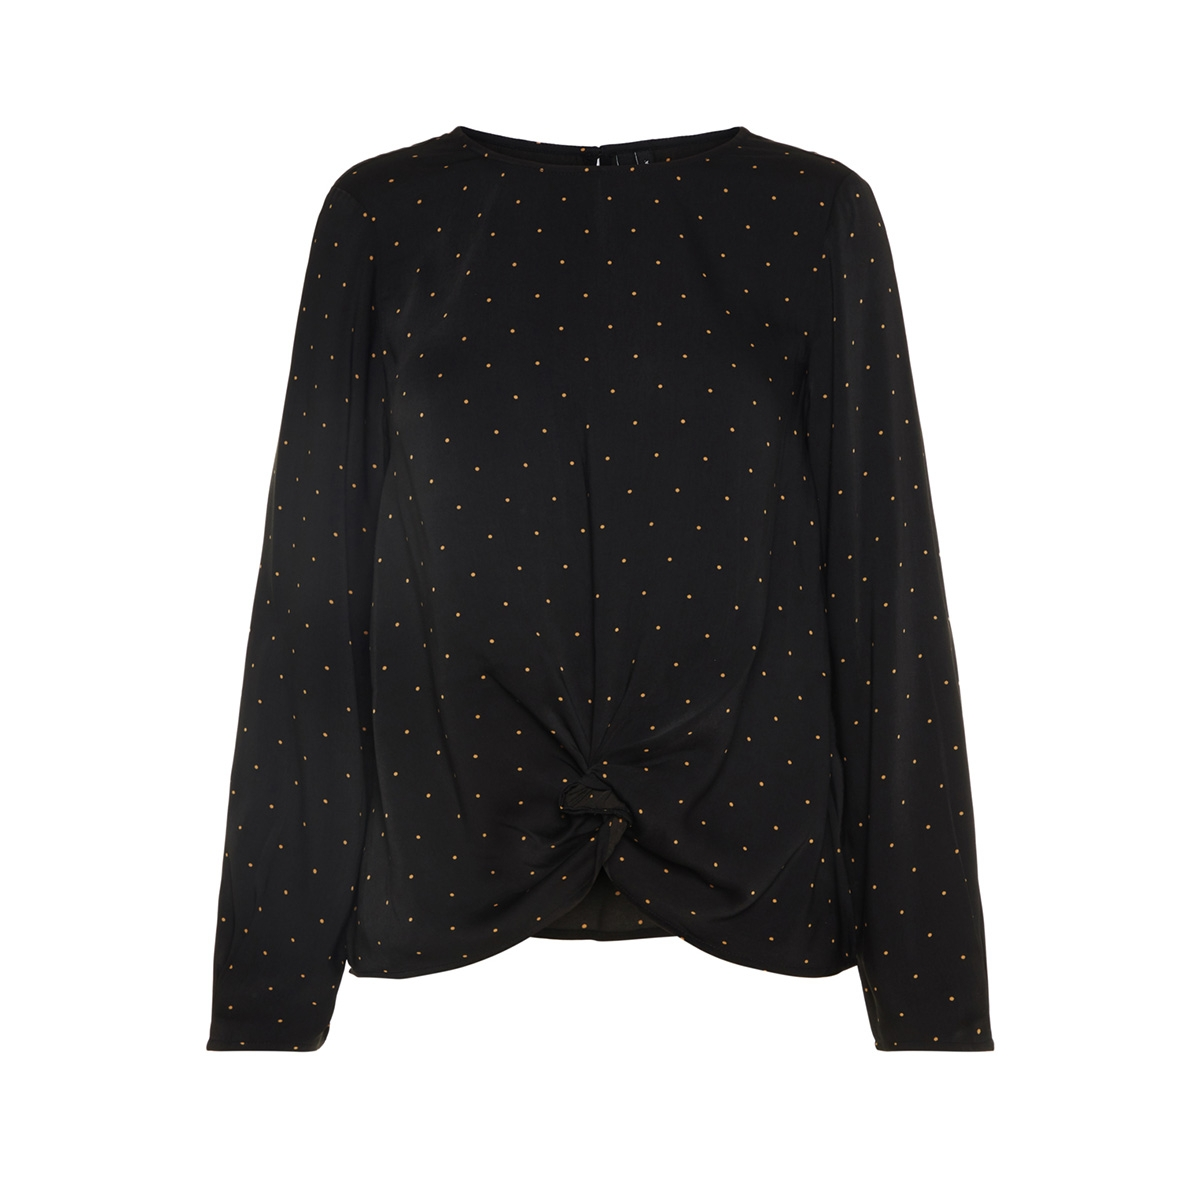 vmstanly knot l/s top exp 10210477 vero moda blouse black/small toba